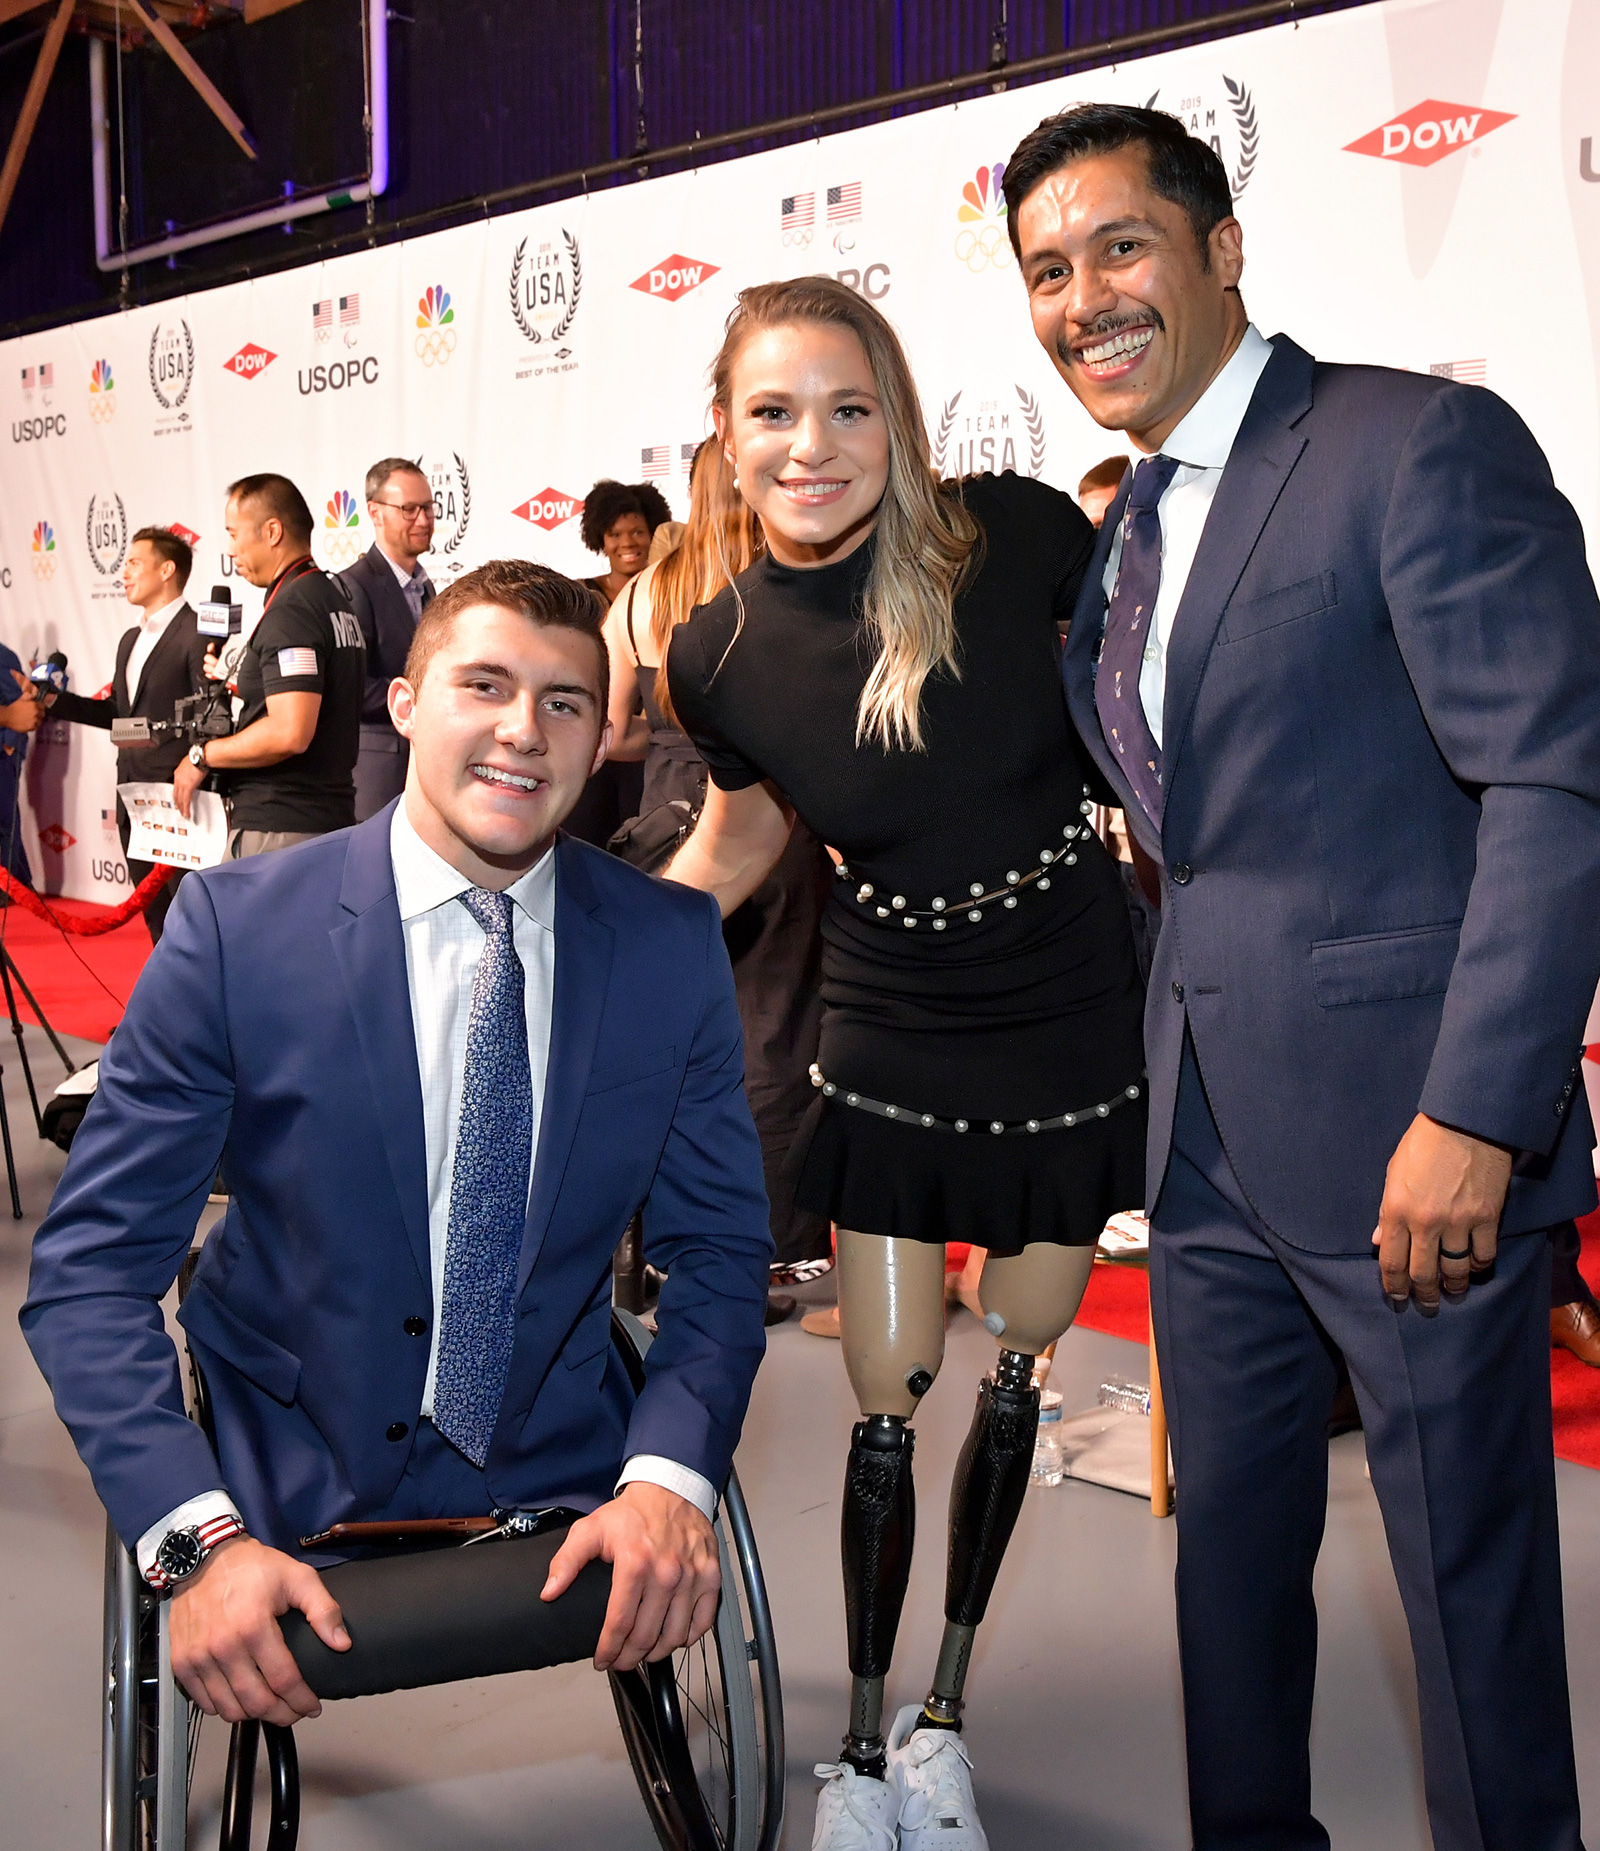 Brody Roybal, Oksana Masters, and Rico Roman attend the 2019 Team USA Awards at Universal Studios Hollywood on November 19, 2019 in Universal City, California